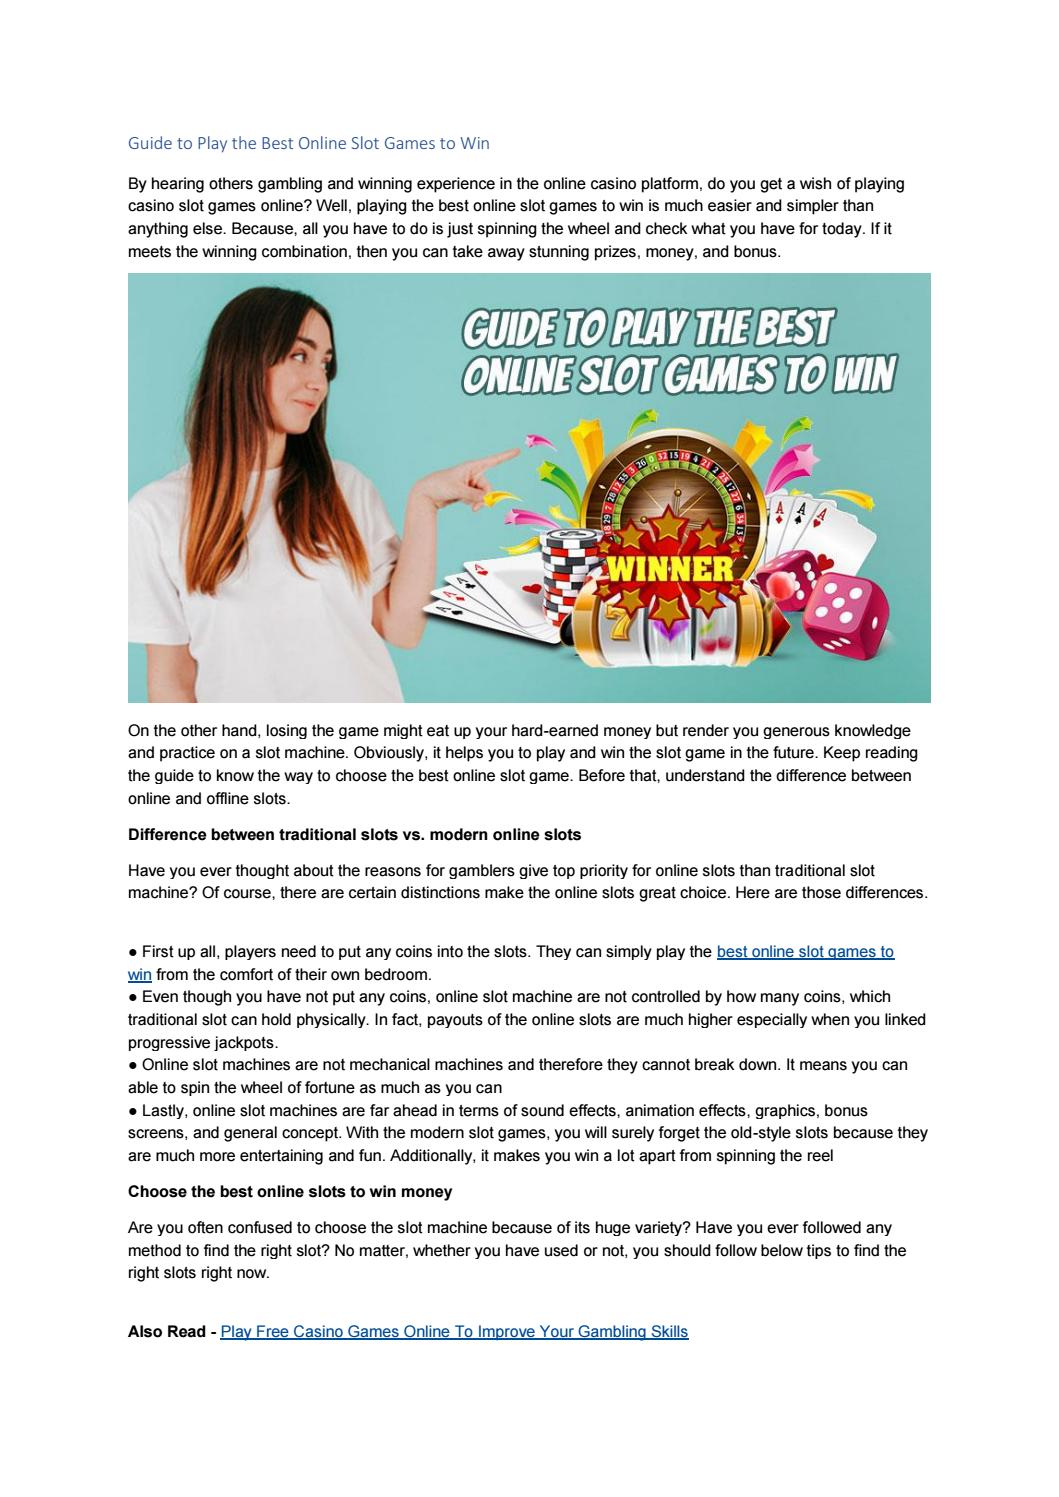 Guide To Play The Best Online Slot Games To Win By Playleon Issuu